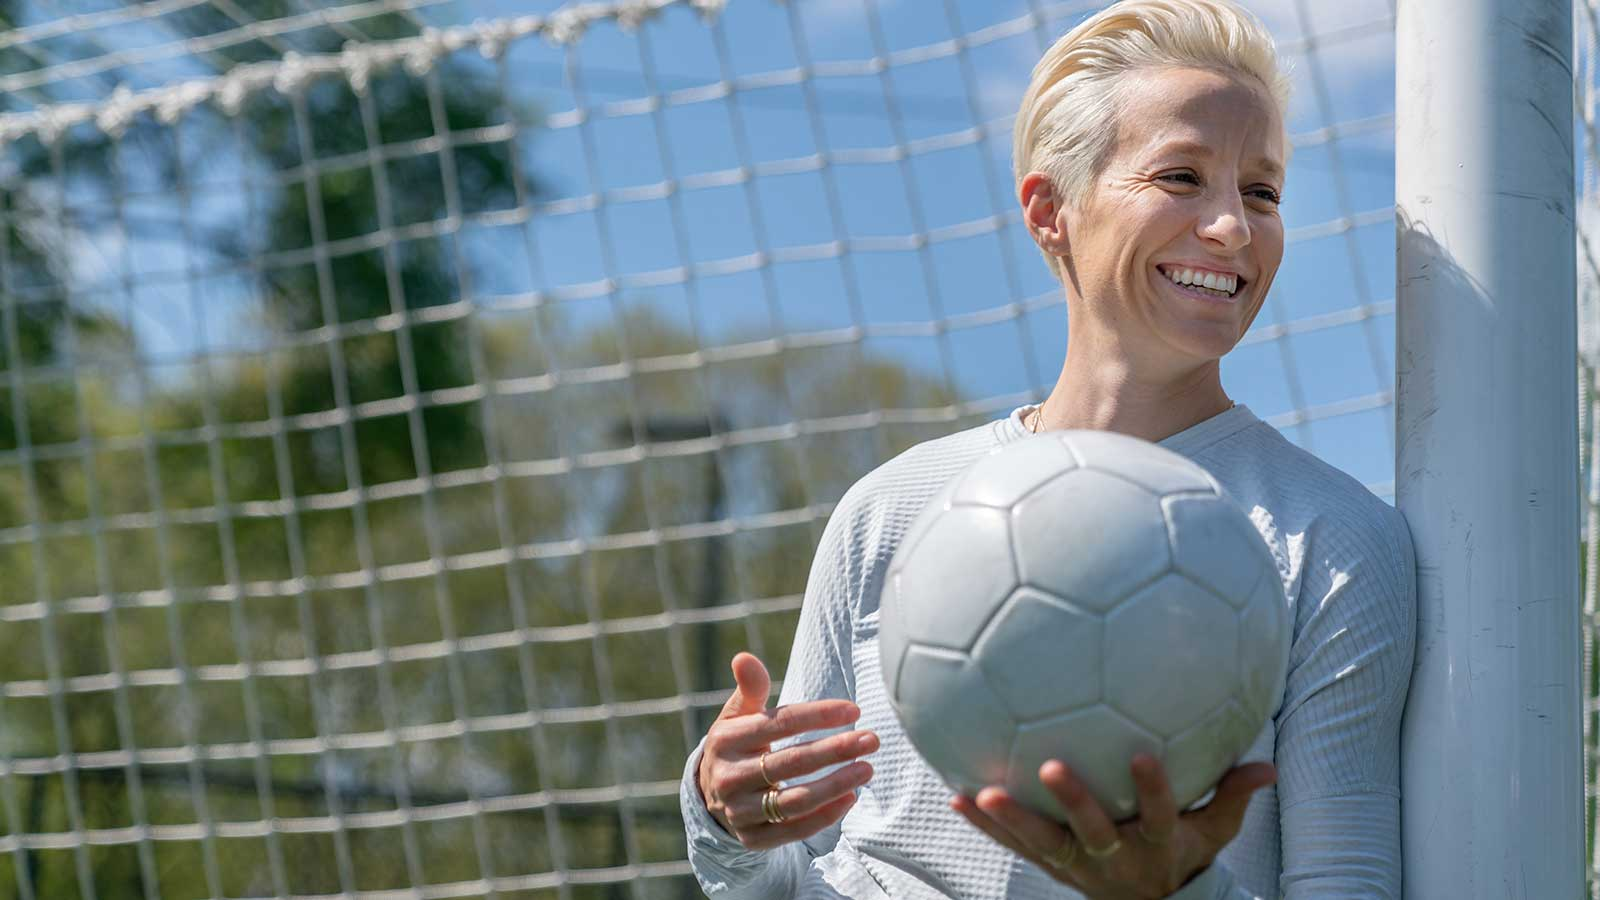 Megan Rapinoe holding a soccer ball while leaning against a goal post.